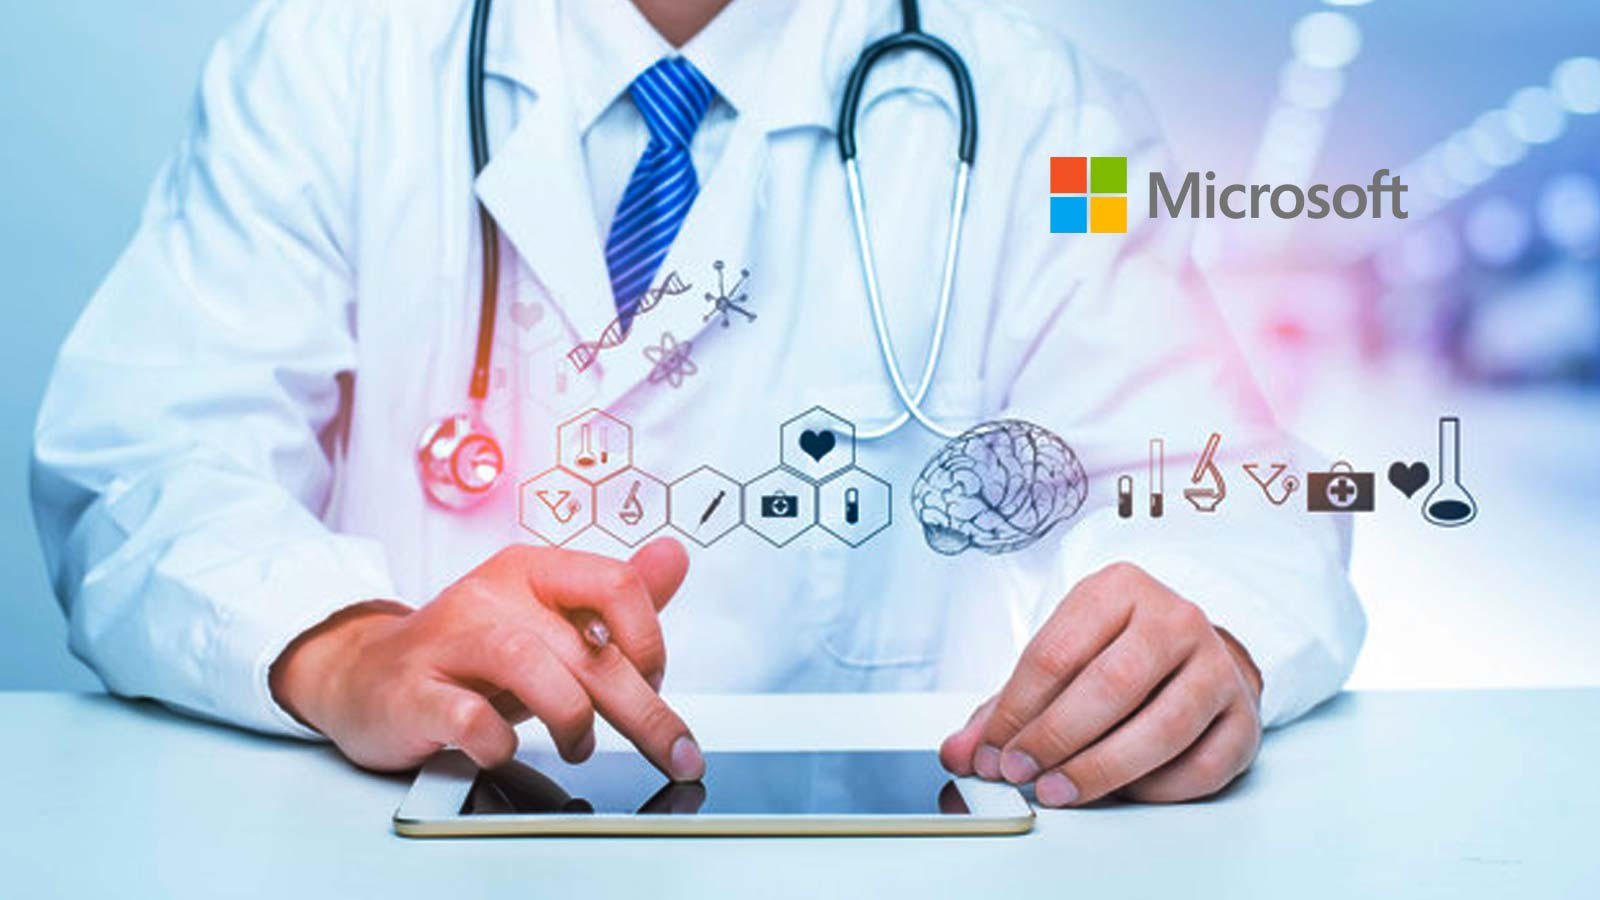 Microsoft launches new AI for Good program AI for Health to accelerate global health initiatives.